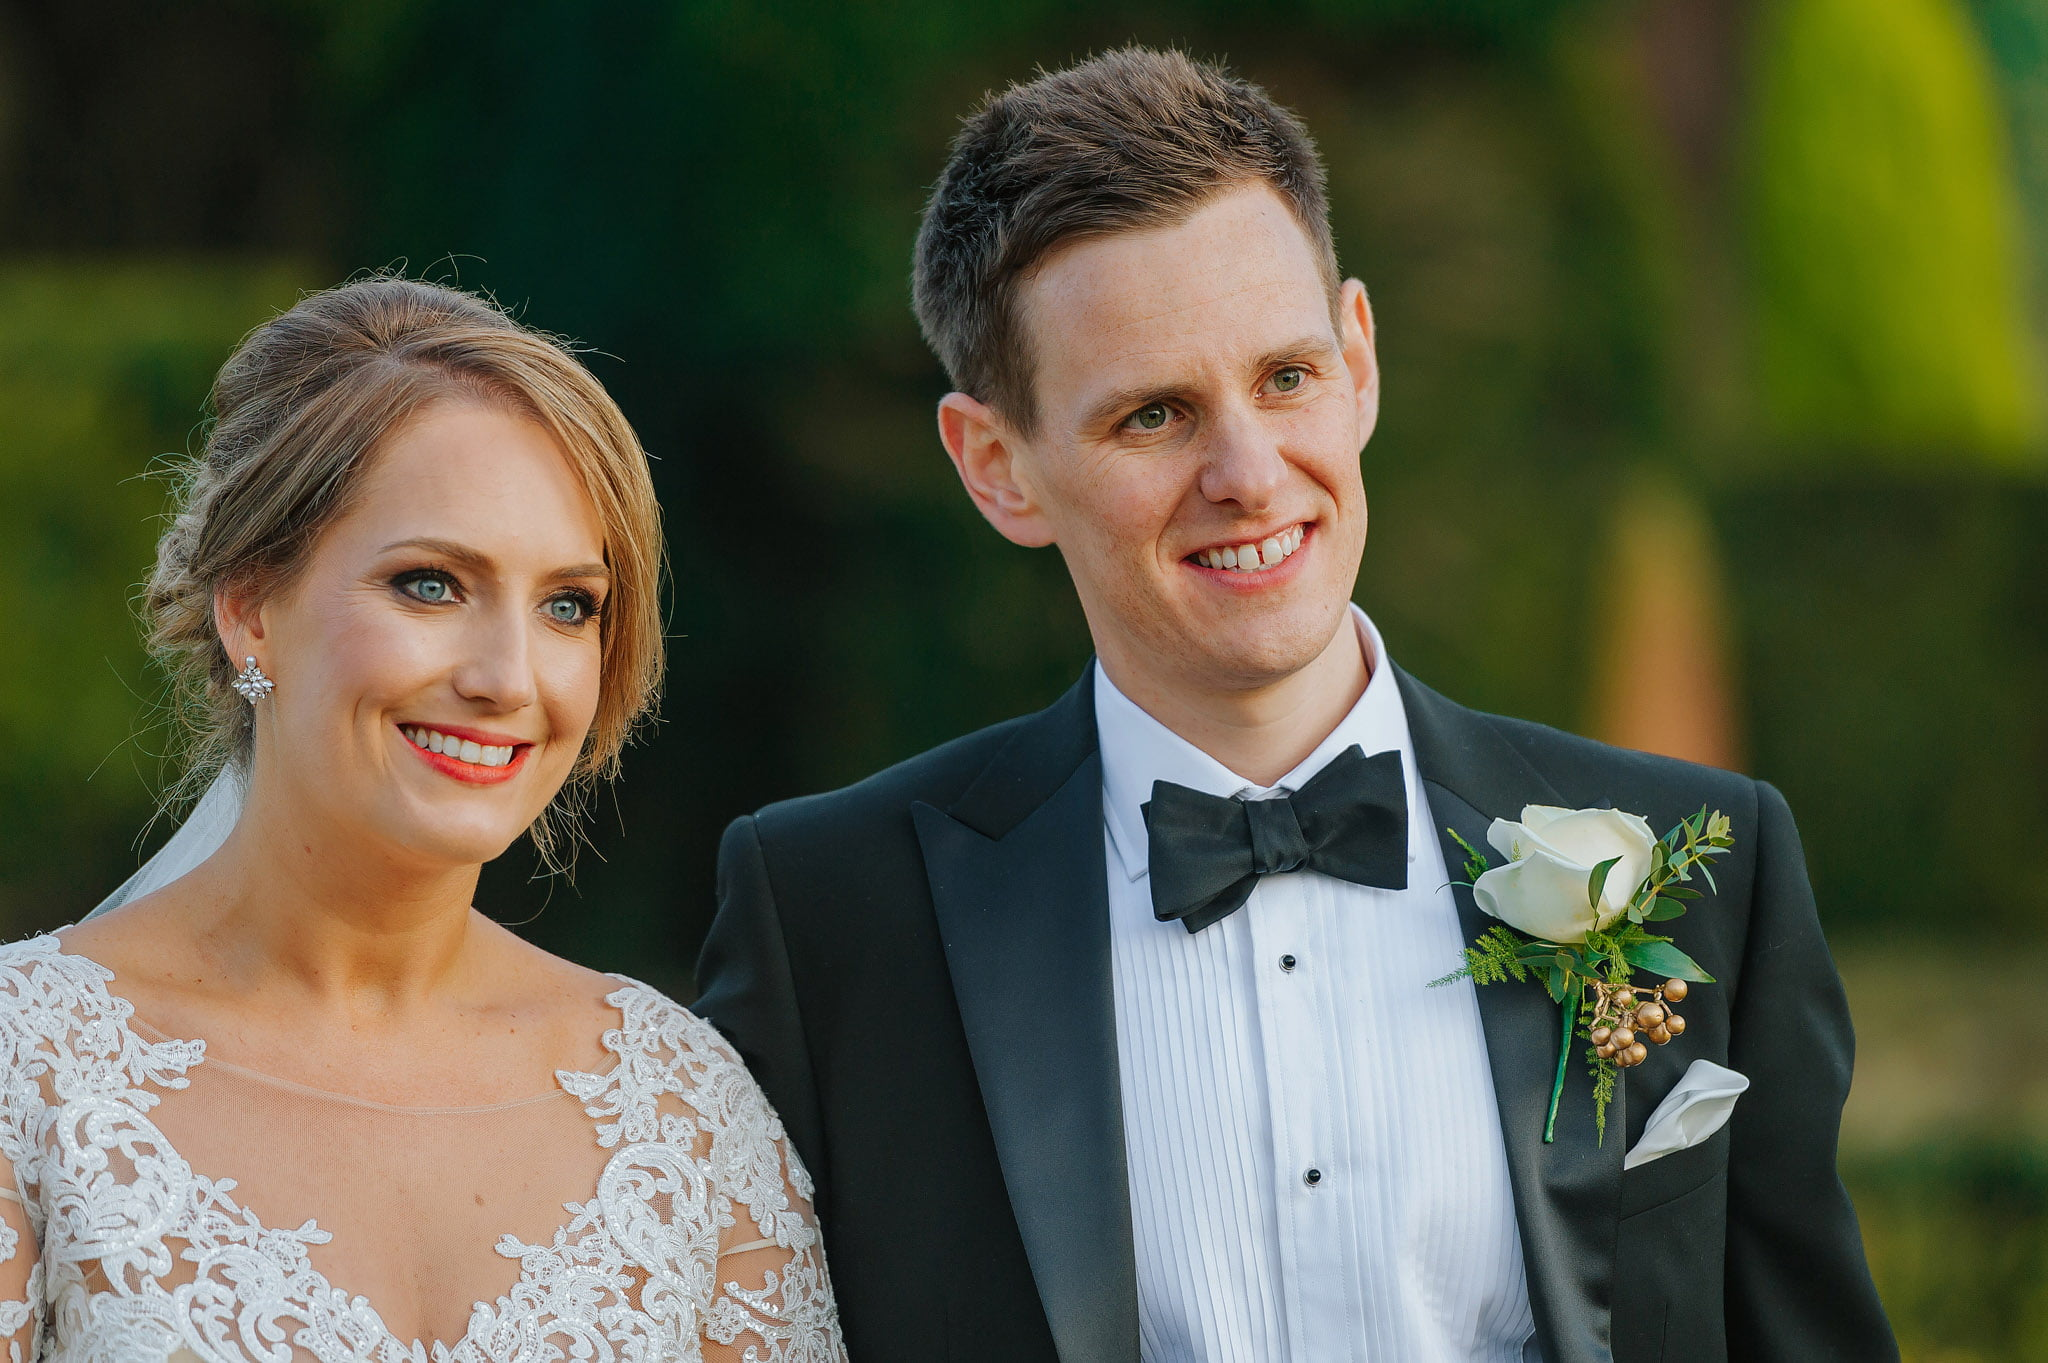 coombe abbey wedding coventry 83 - Coombe Abbey wedding in Coventry, Warwickshire - Sam + Matt